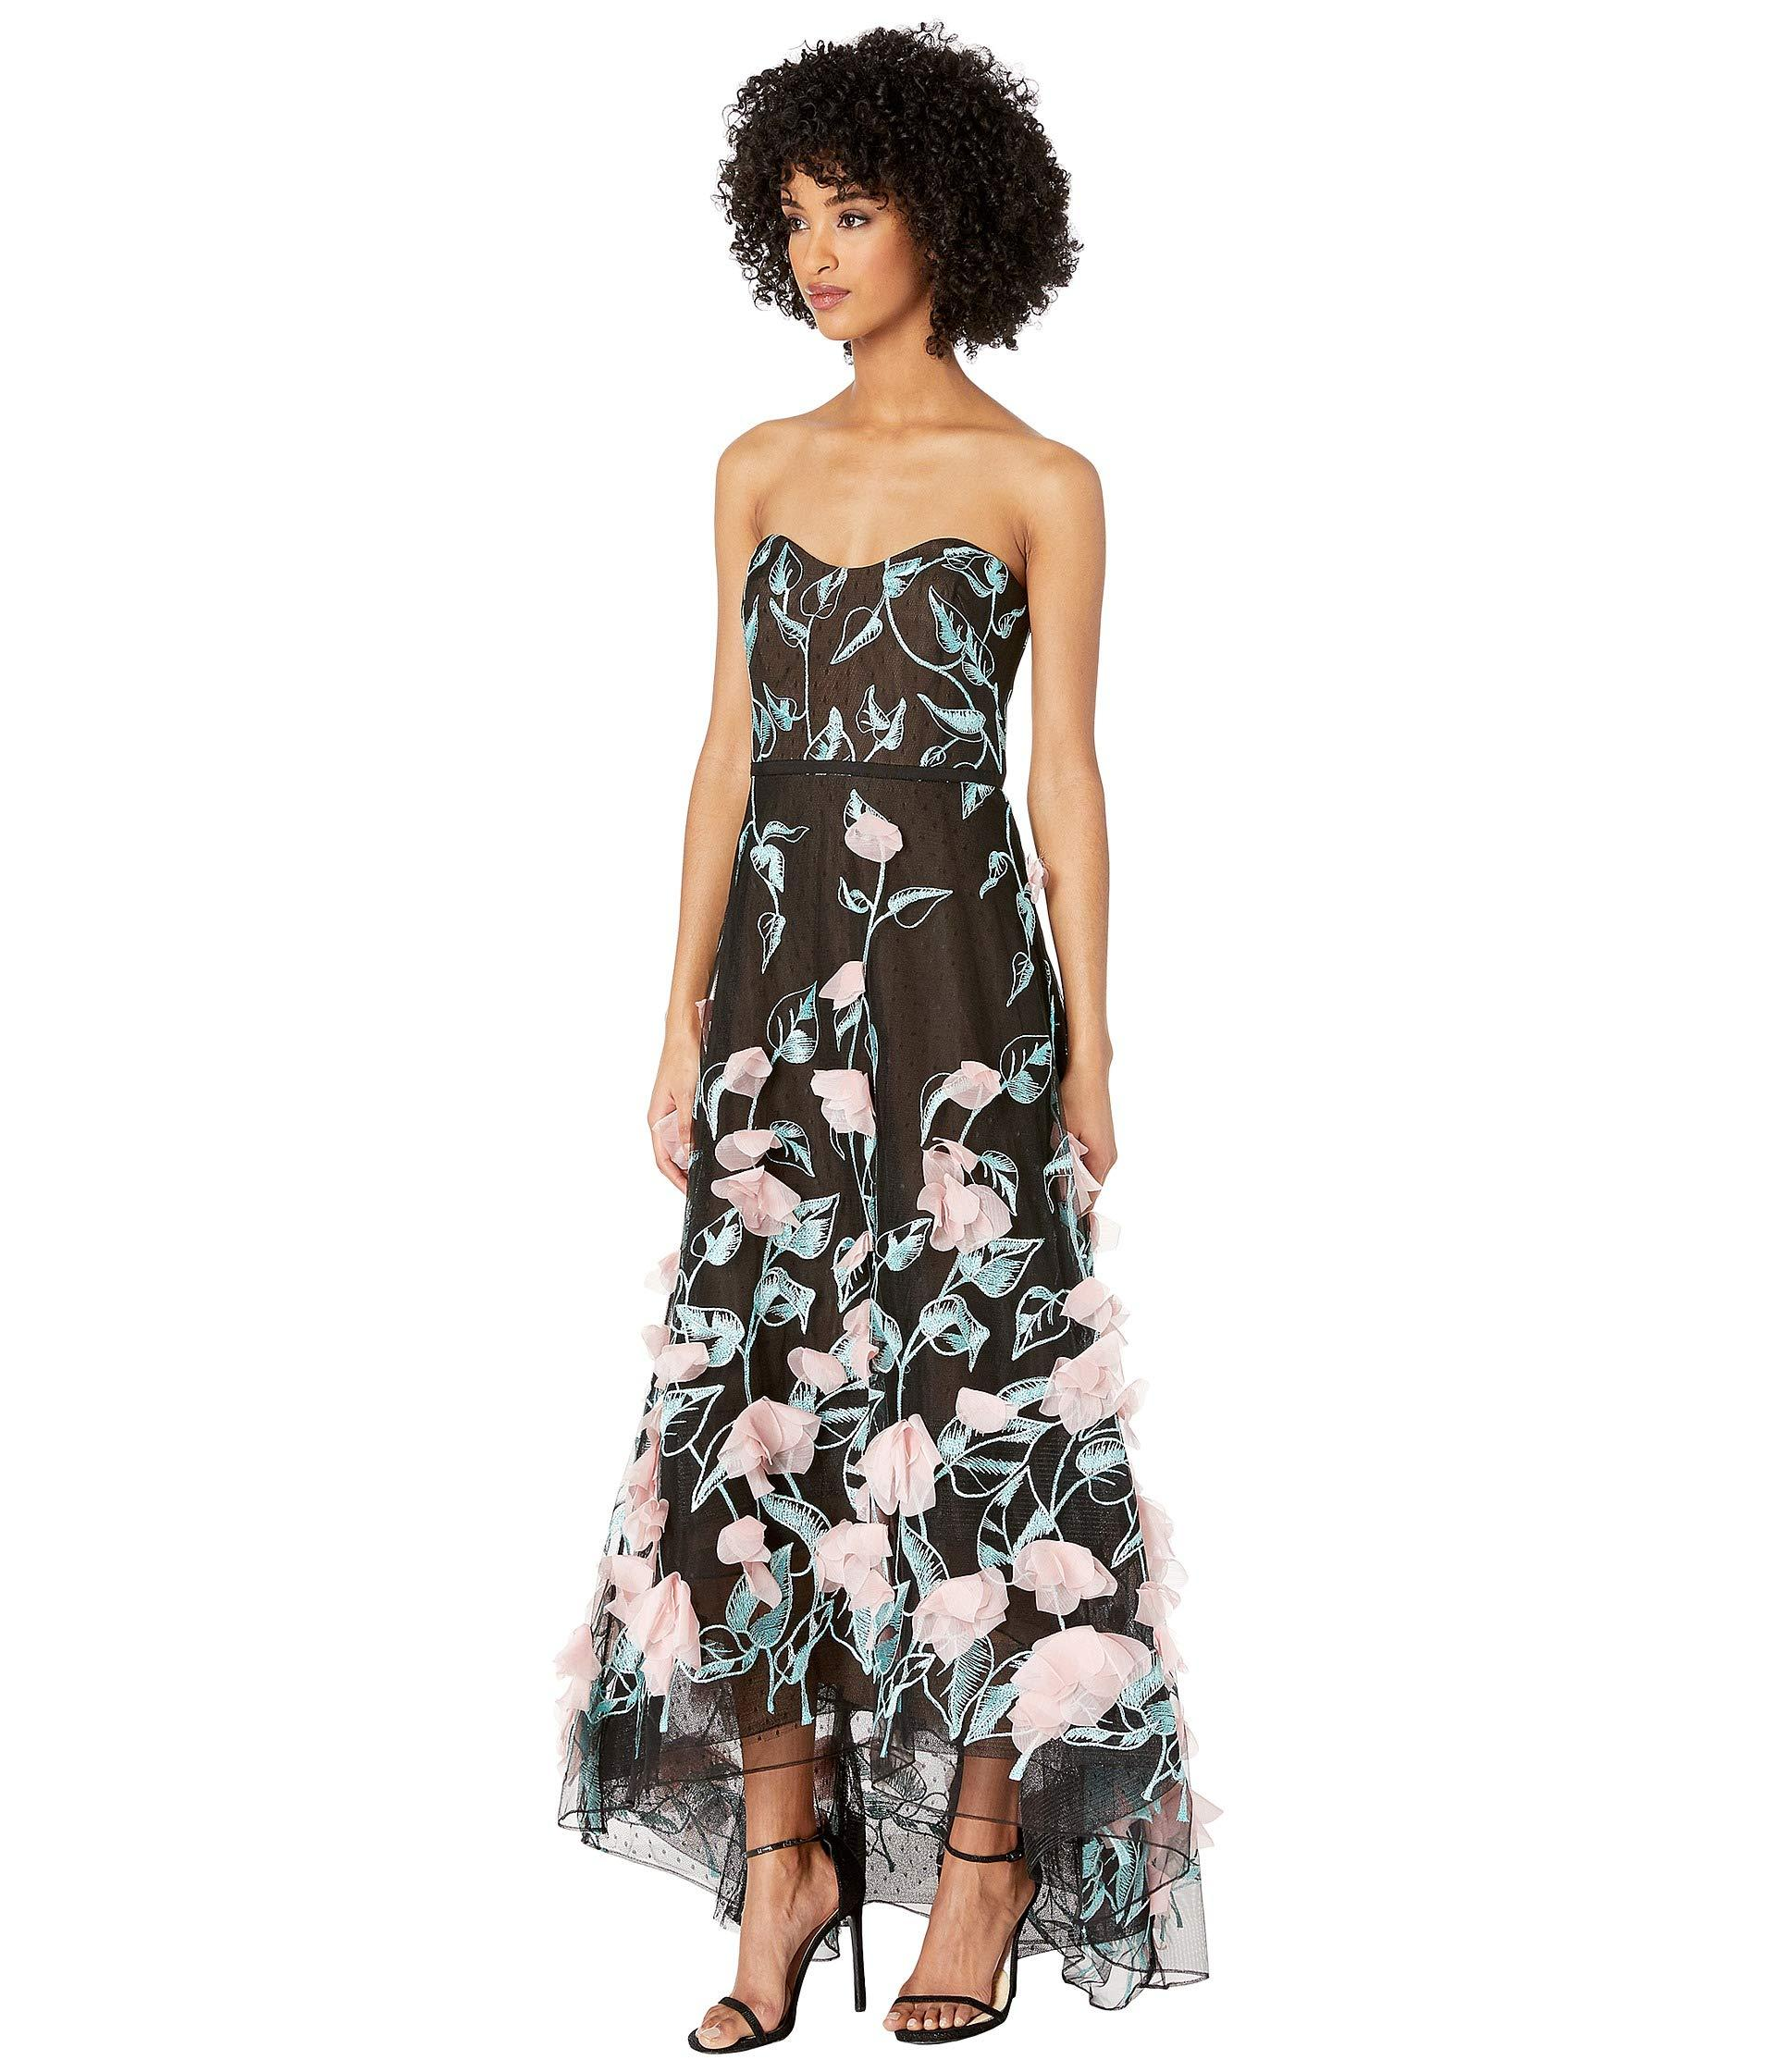 acaee2b3bd4 Marchesa notte Strapless High Low Embroidered Gown With 3d Flowers in Black  - Save 11% - Lyst